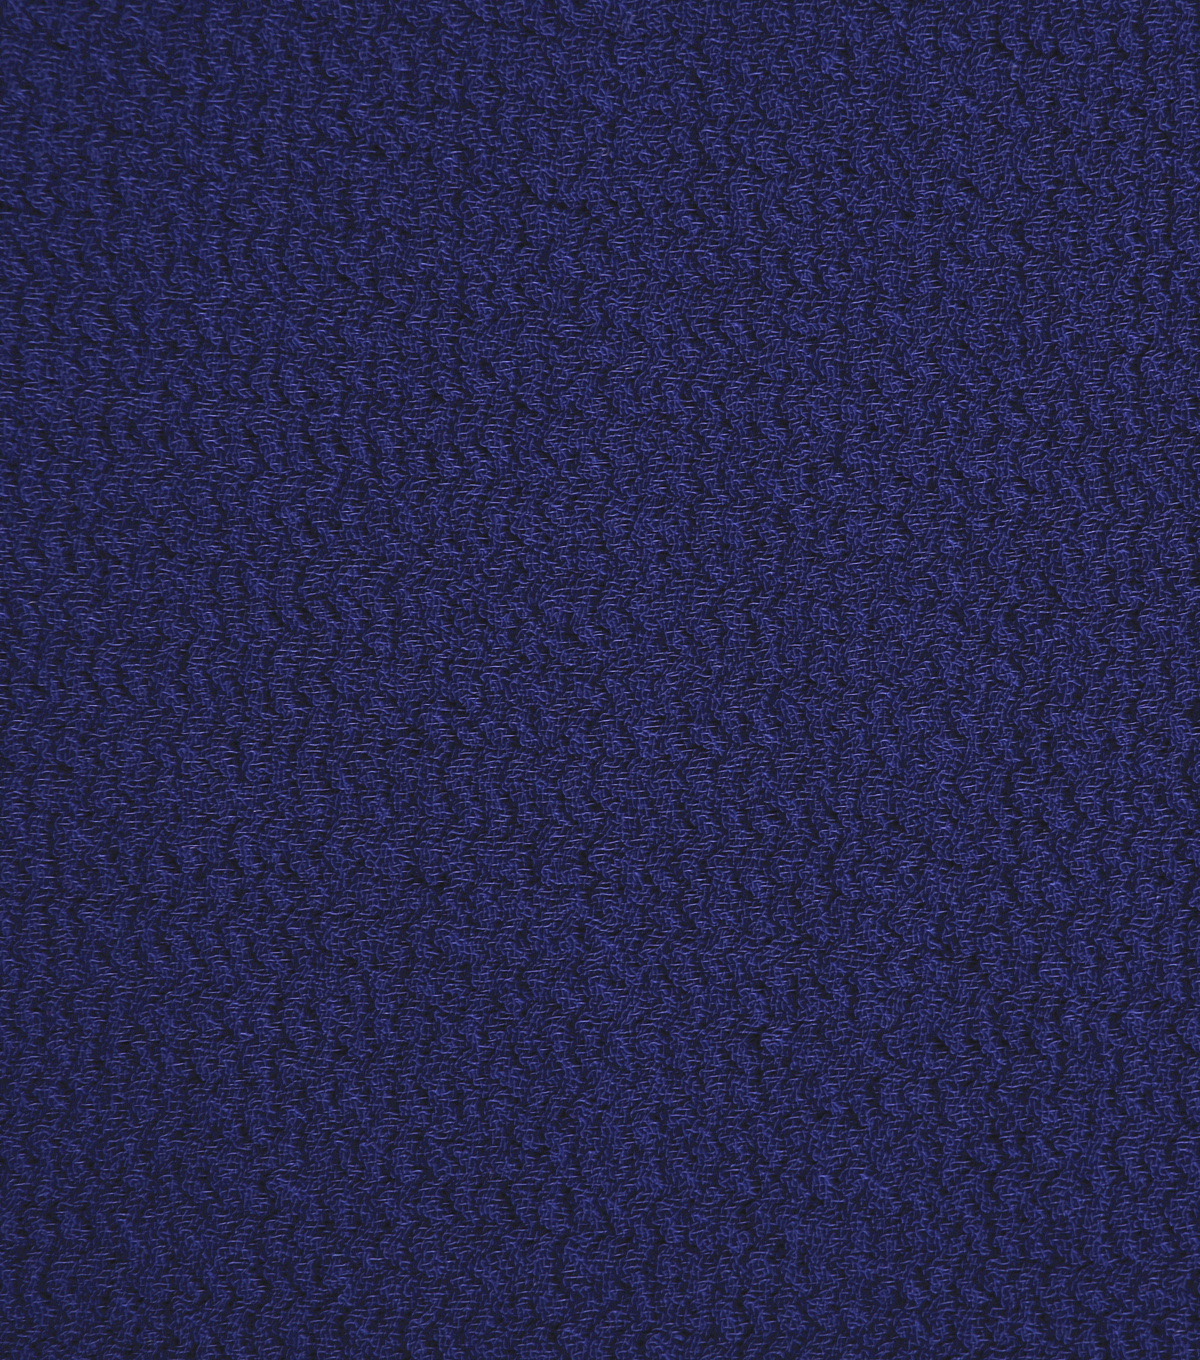 Silky Solid Crepe Knit Fabric-Solid Textured, Navy